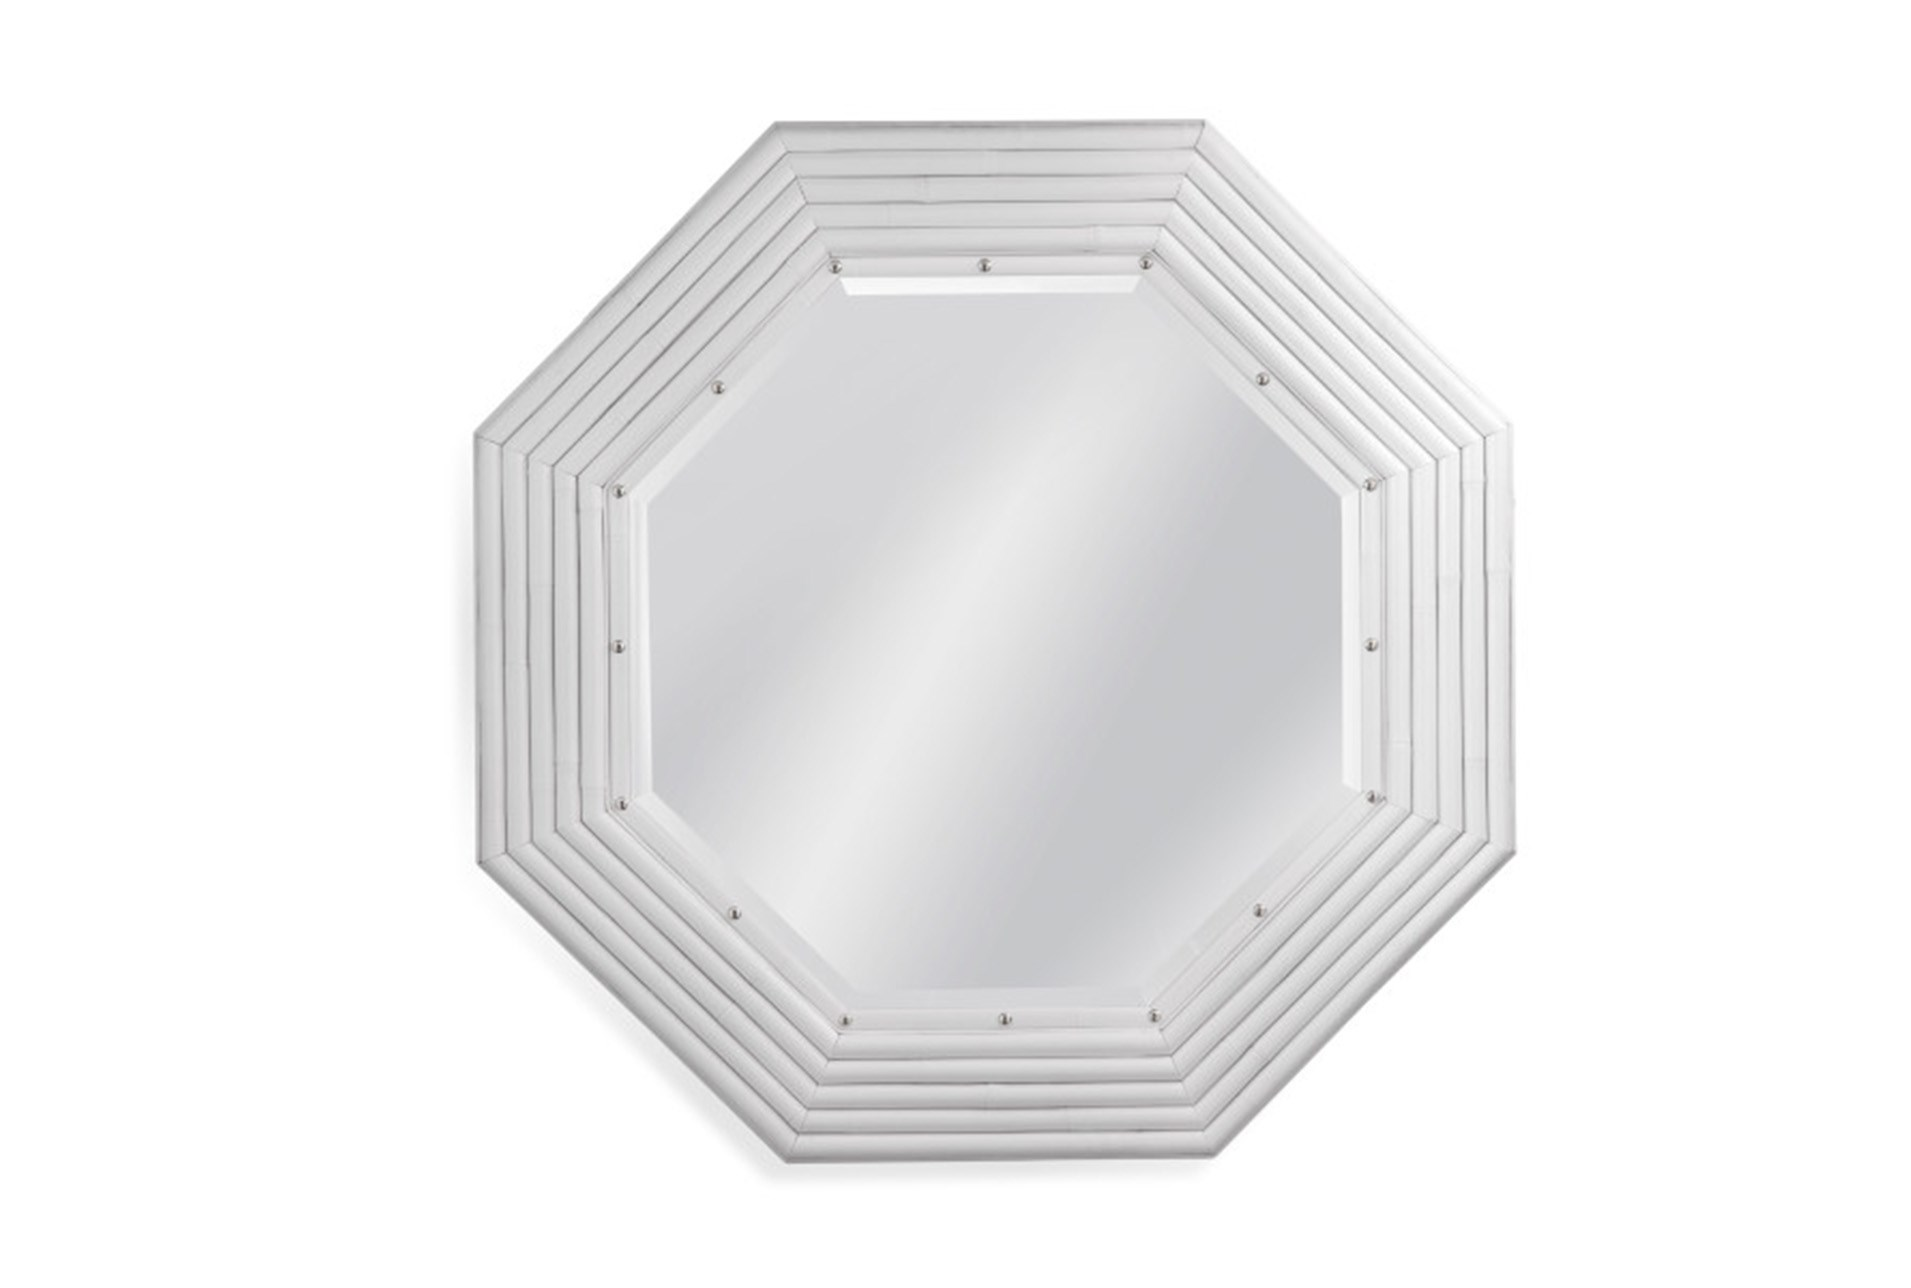 48 x 48 mirror antique mirror mirrorwhite stud 48x48 qty 1 has been successfully added to your cart living spaces